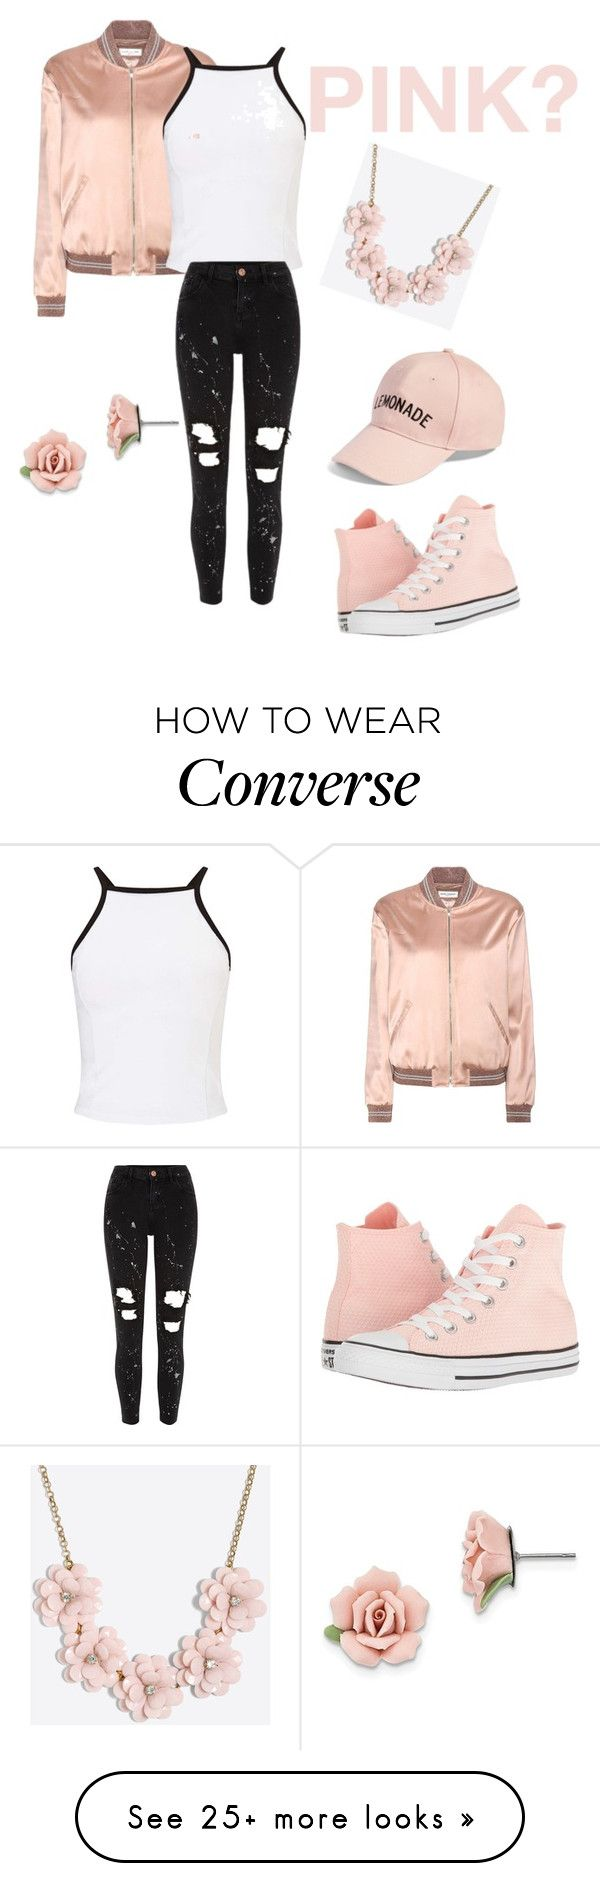 """Pink????"" by lowkeyarii on Polyvore featuring Converse, Yves Saint Laurent, Miss Selfridge, River Island, Amici Accessories, J.Crew and 1928"